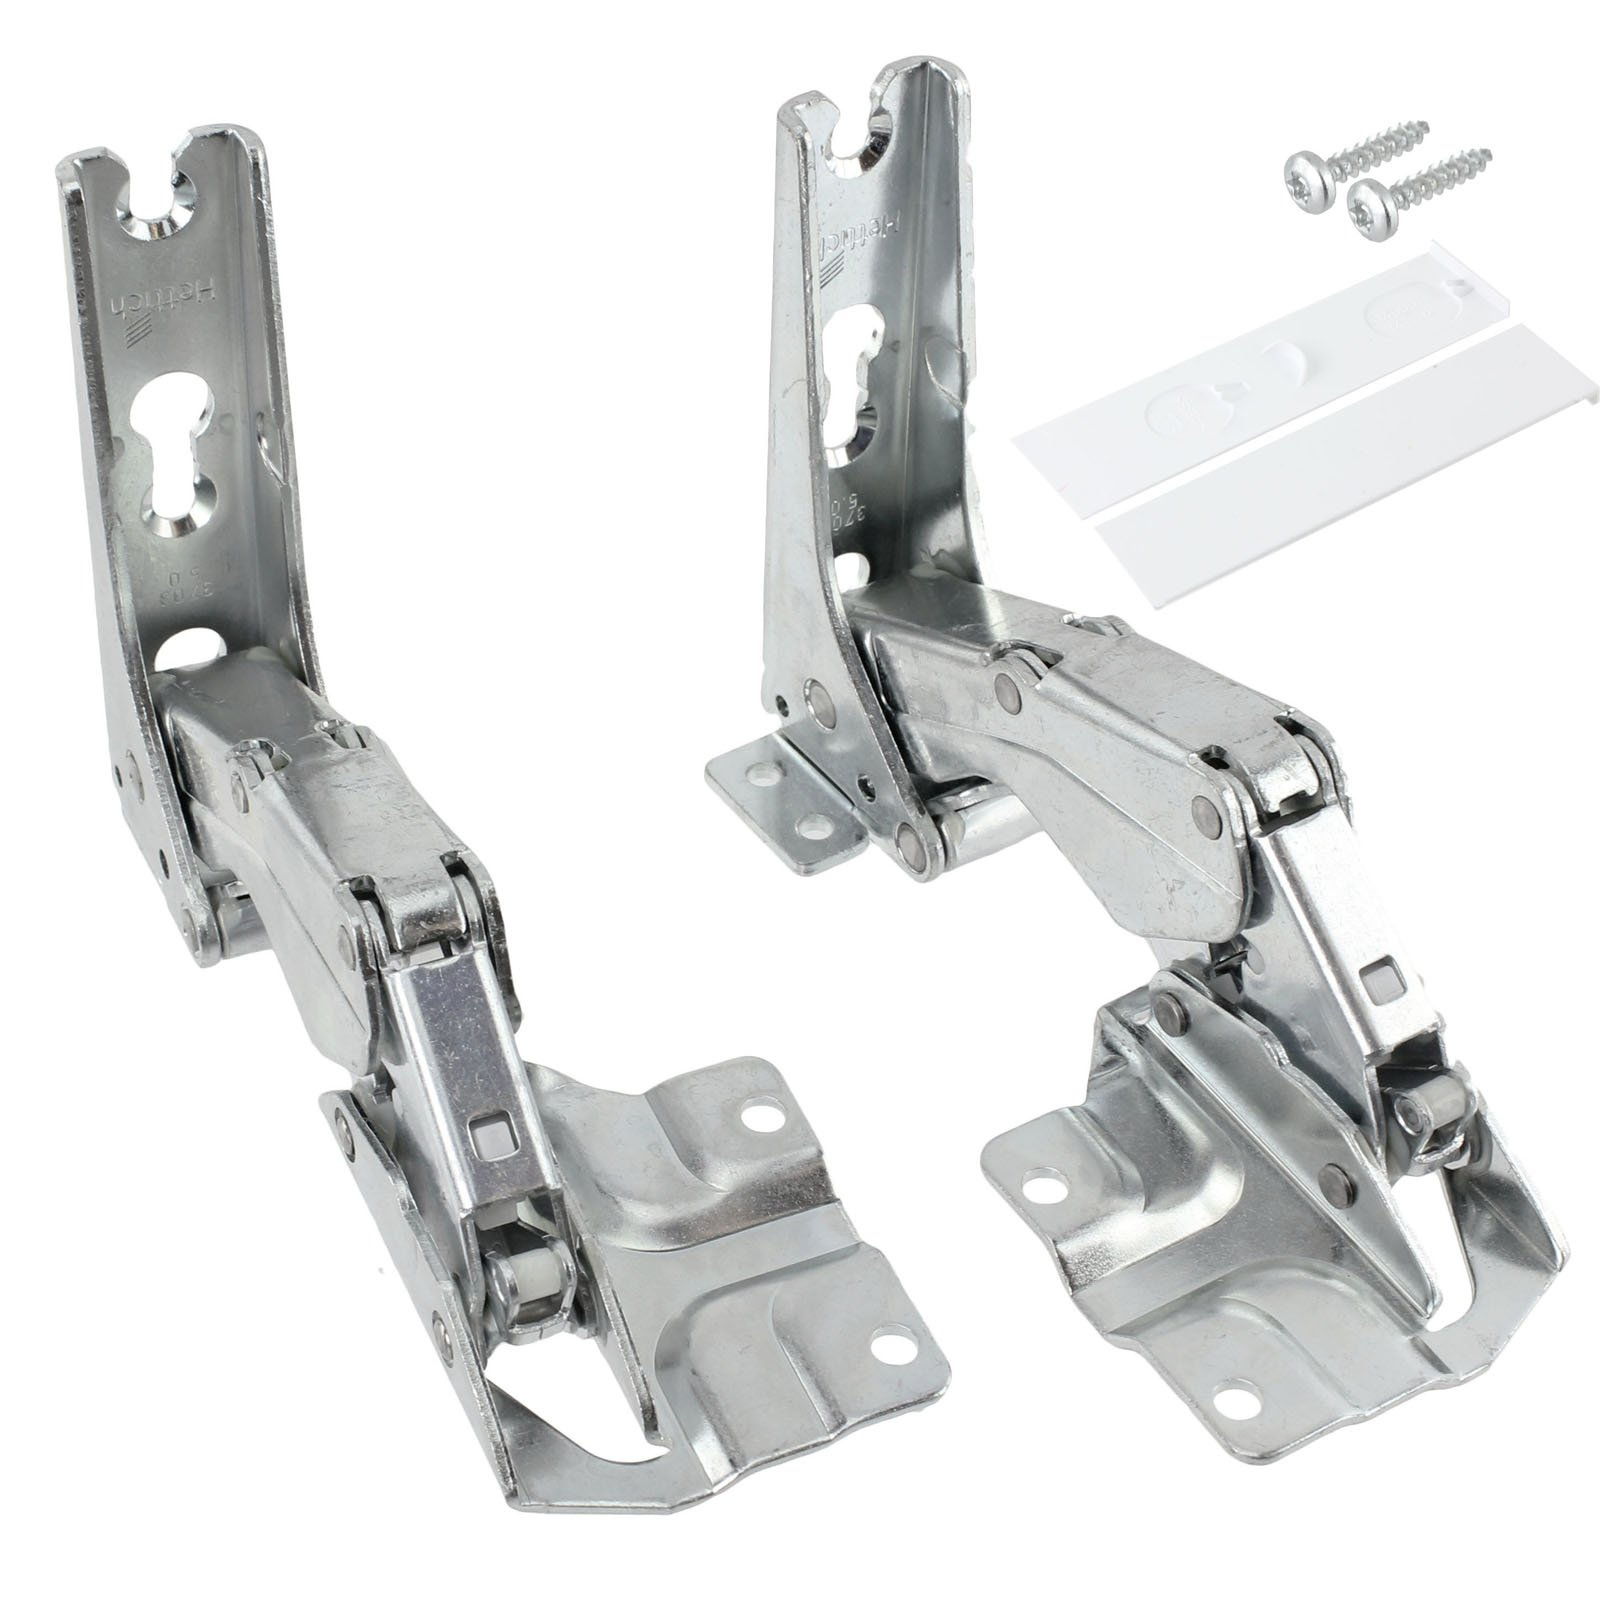 FRIDGE FREEZER DOOR HINGE KIT, 2PCS.  BOSCH  481147/ 37002351 Malta, 								Fridge Malta, Polar Services LTD Malta Malta